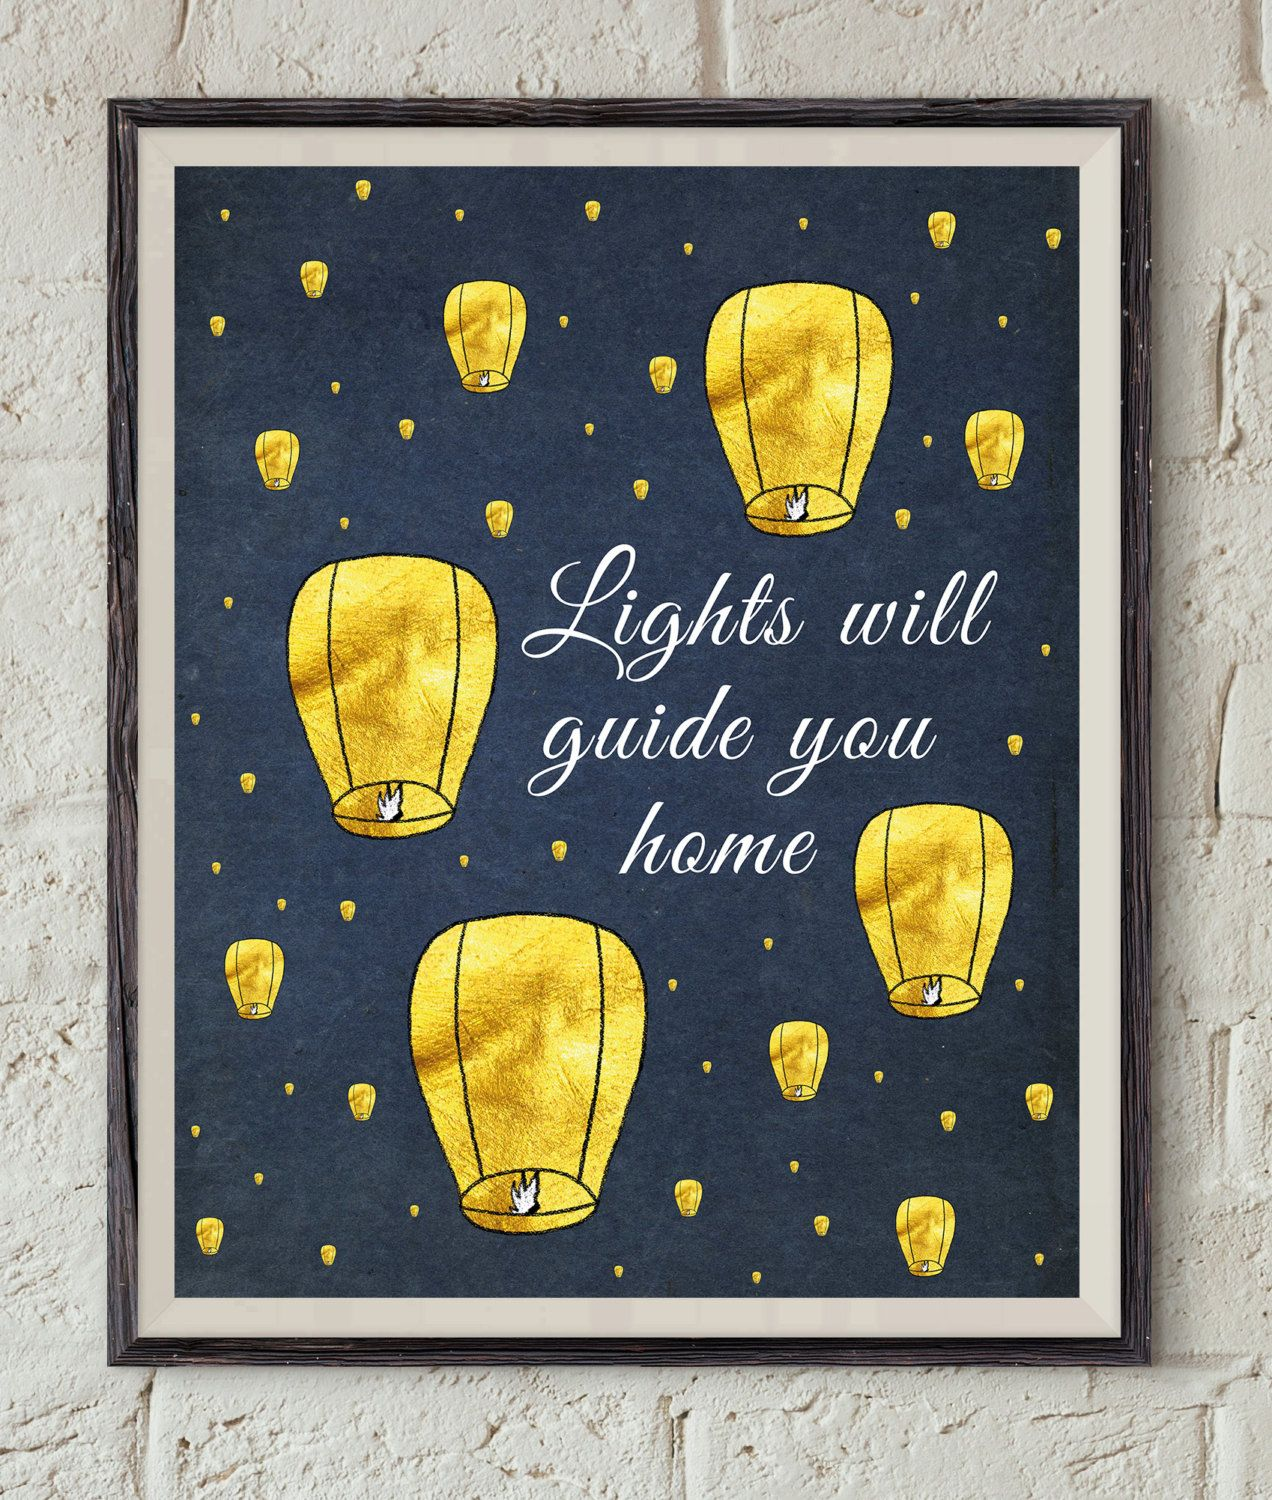 Coldplay Song Lyrics - Lights Will Guide You Home - Paper Lantern ...